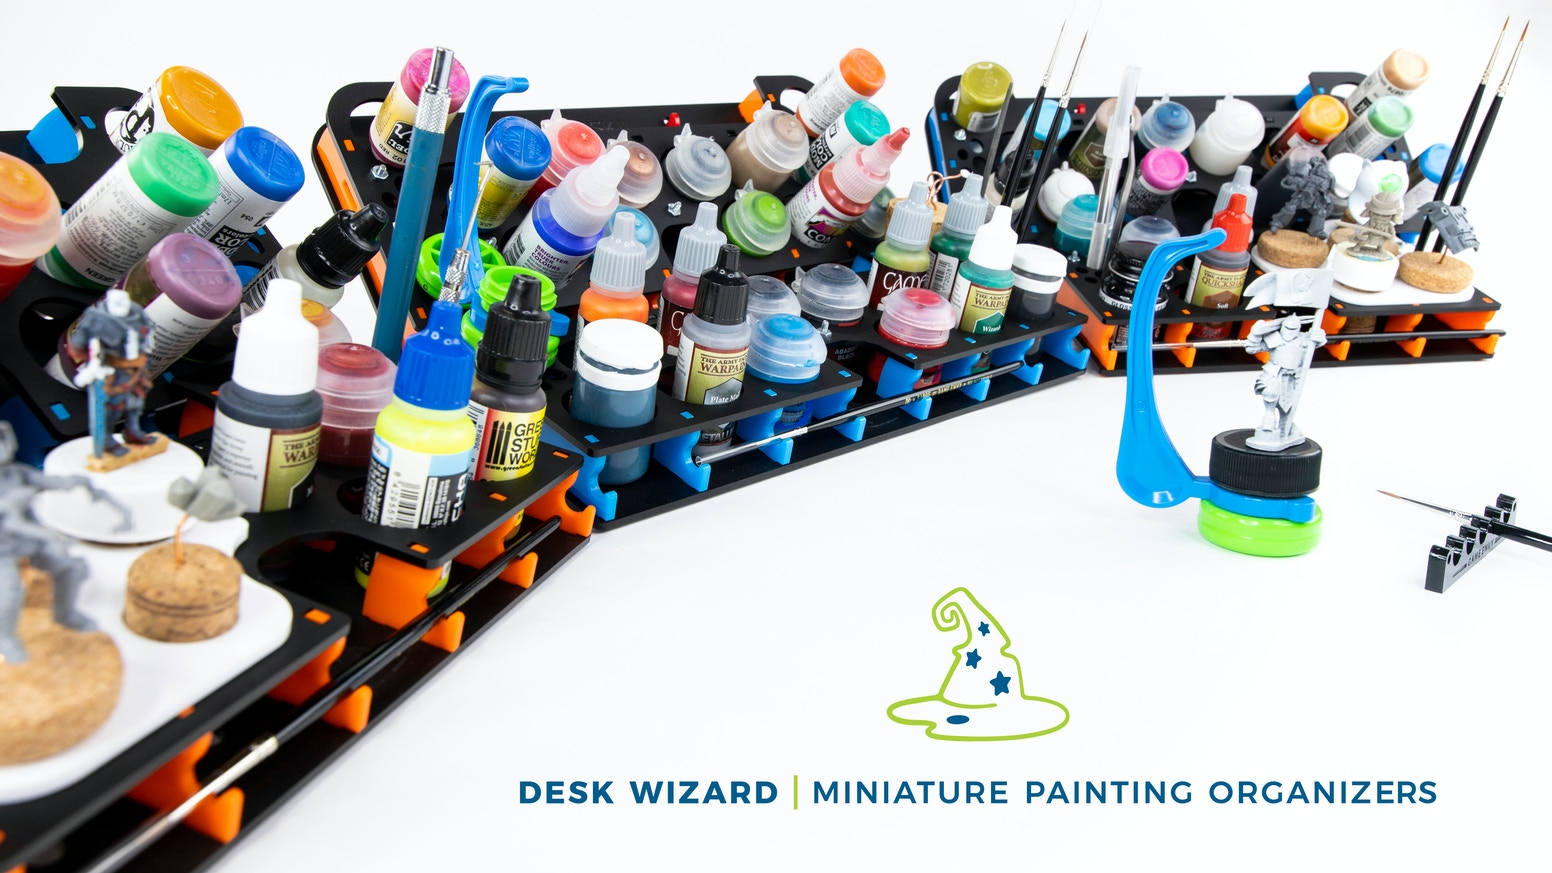 Beautiful and versatile desk organizers that hold the major mini paint brands, brushes, tools, your phone and even the Hobby Holder! A Game Envy Creation